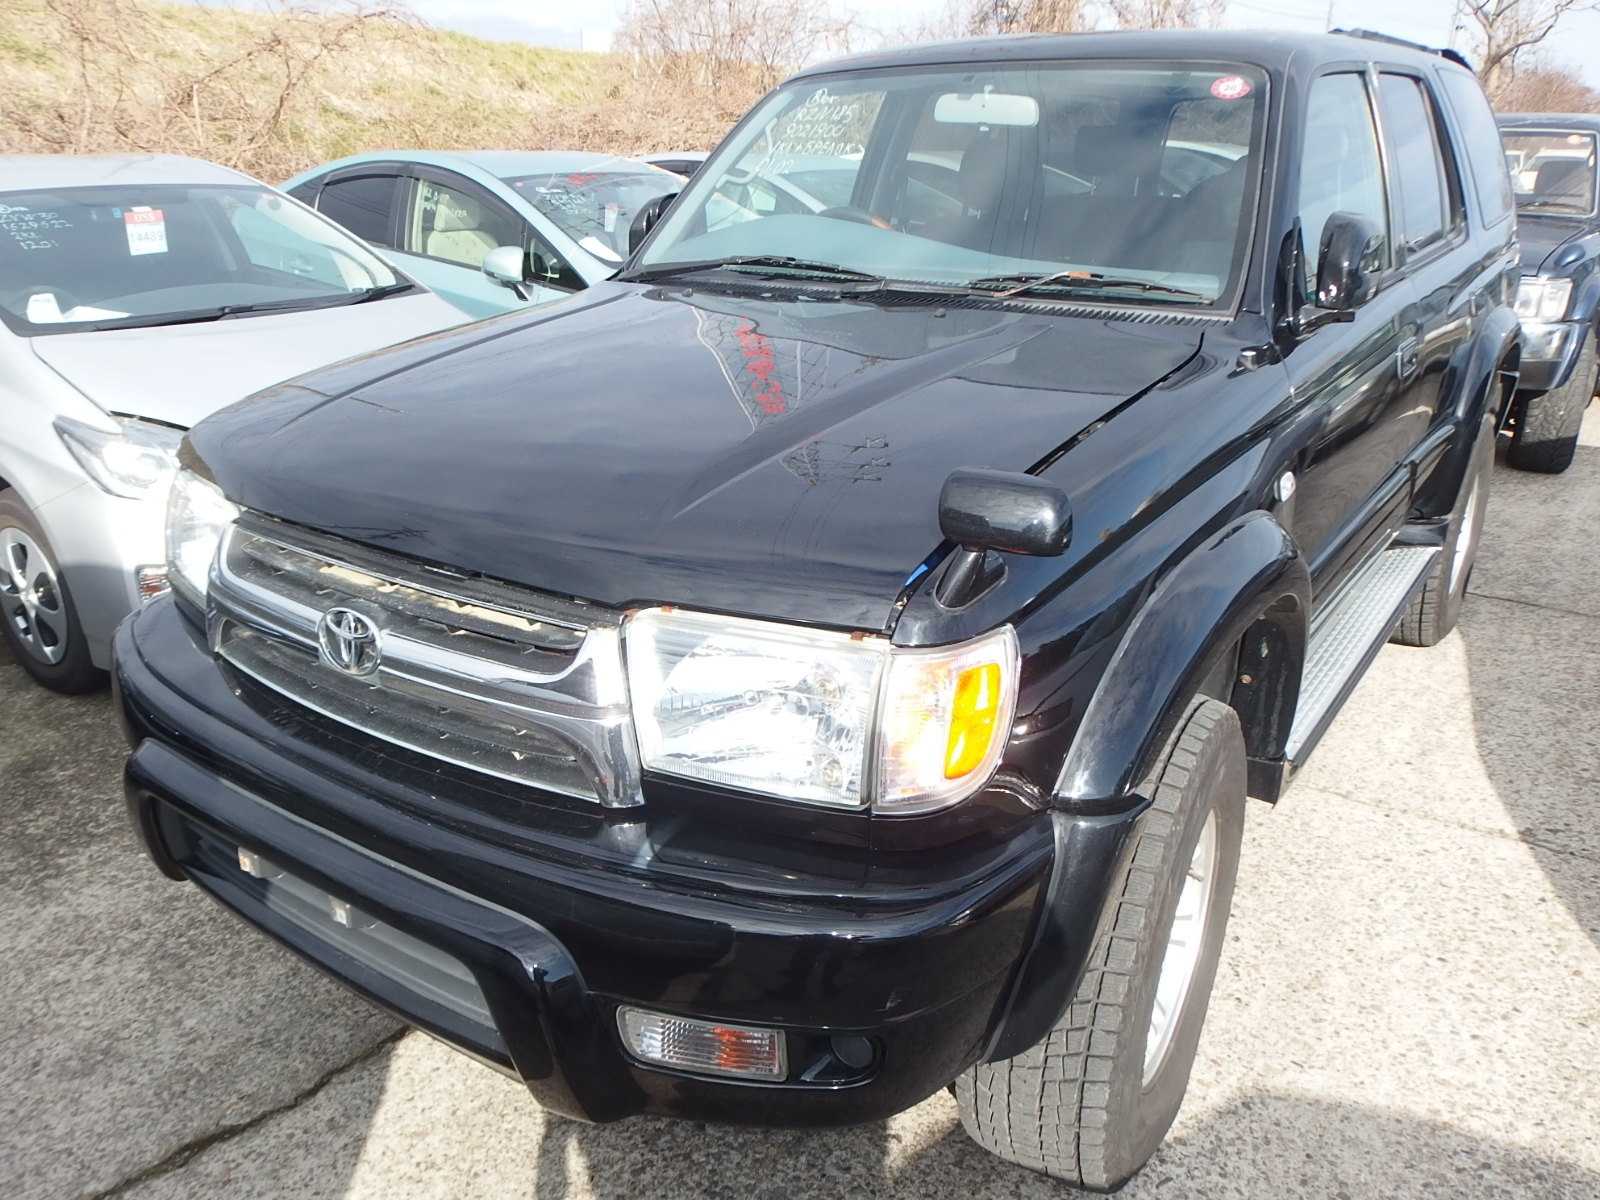 TOYOTA HILUX SURF (4RUNNER) Used Vehicles for Sale from ...